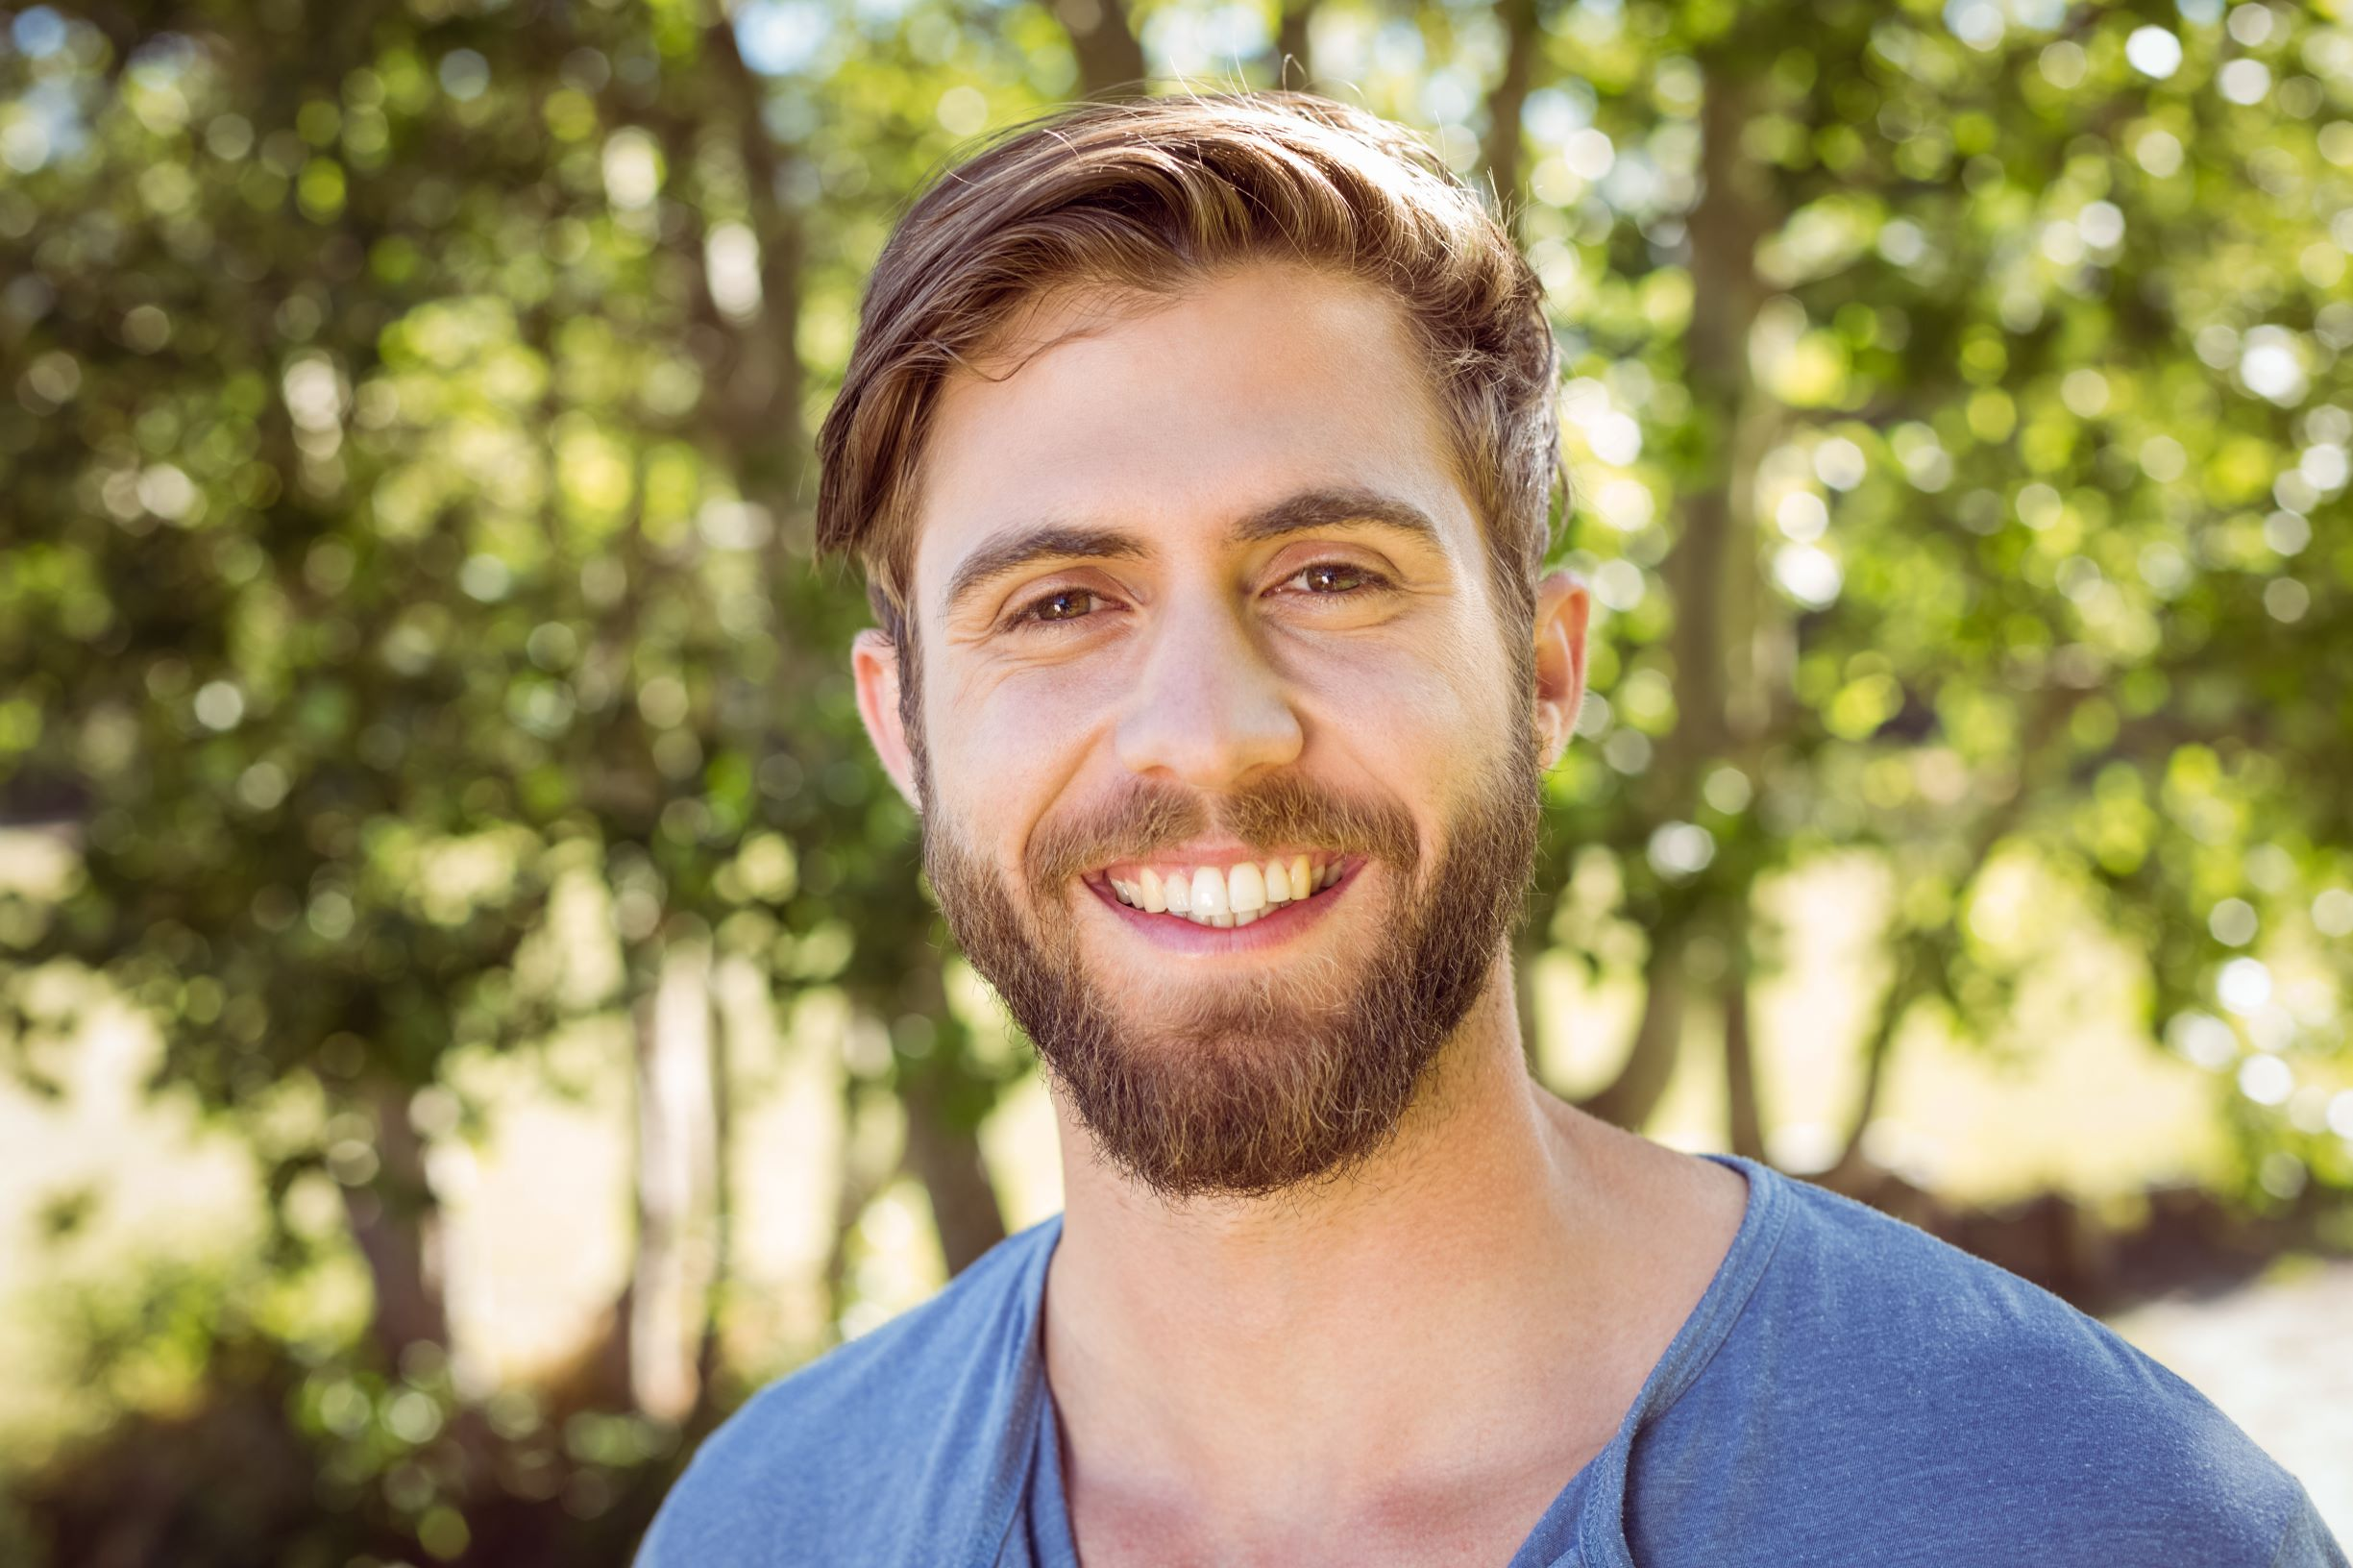 Photo: Young man with beard, smiling at camera